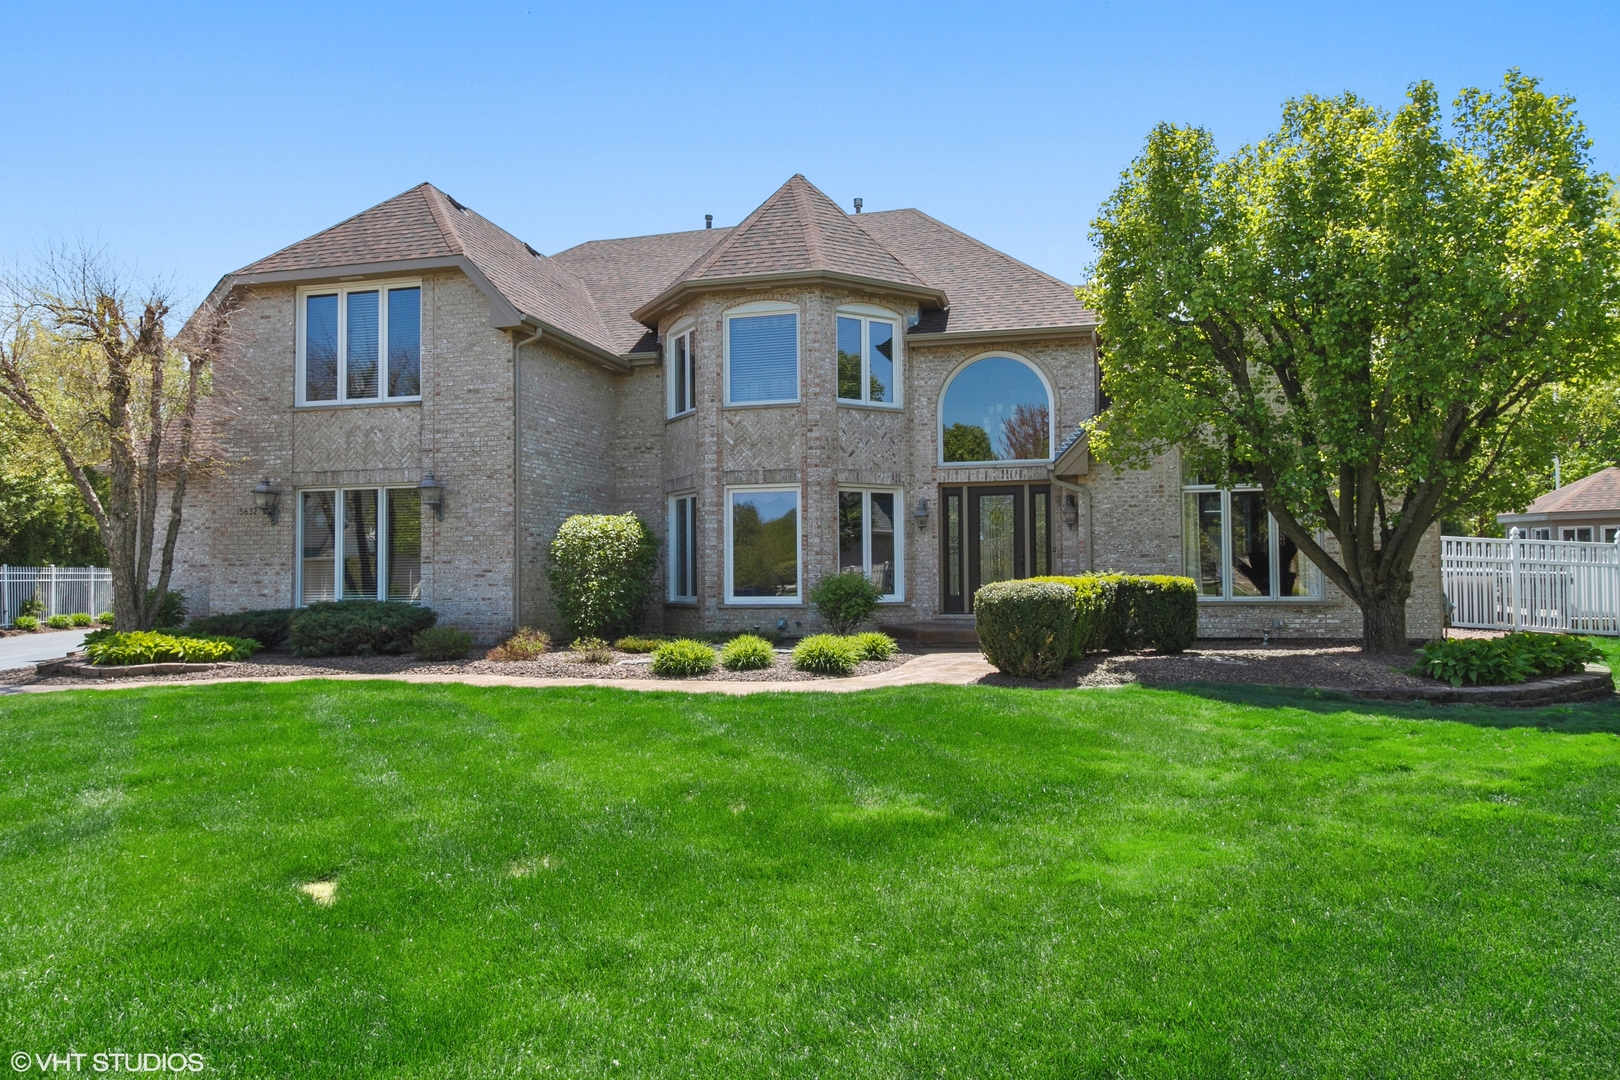 15632 Somerglen Court, Orland Park in Cook County, IL 60467 Home for Sale